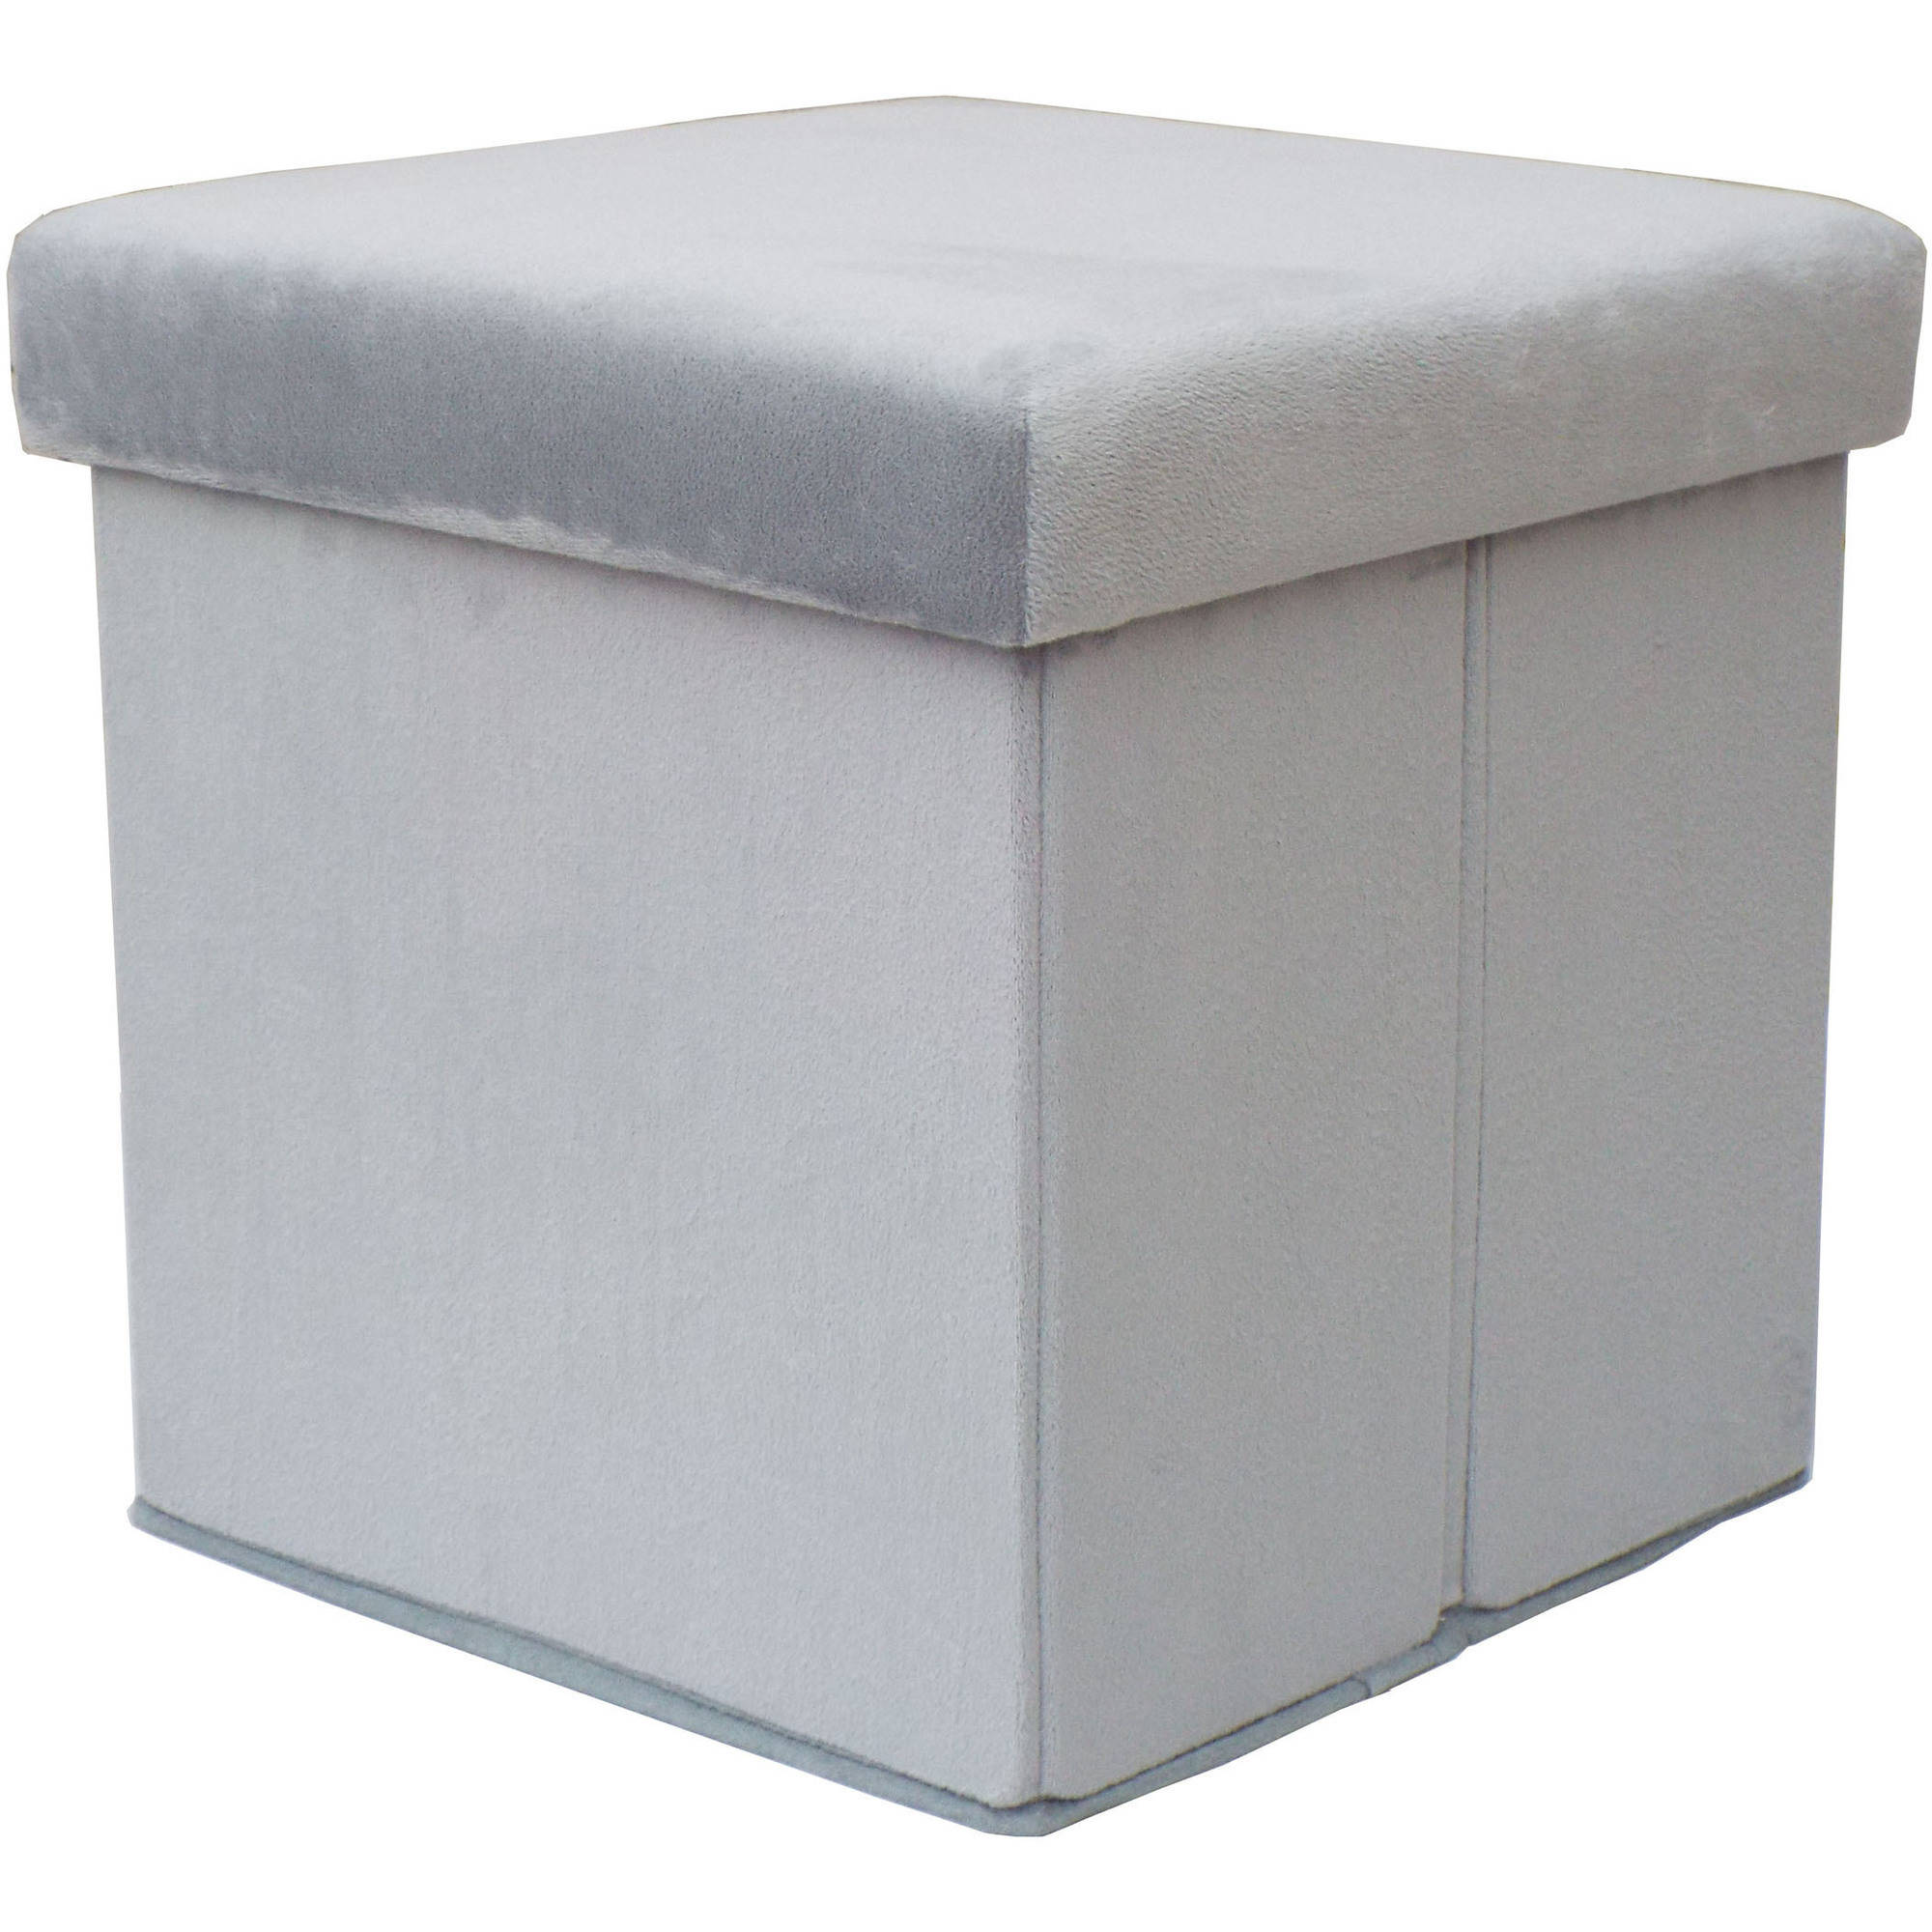 Mainstays Collapsible Plush Storage Ottoman Grey Walmartcom